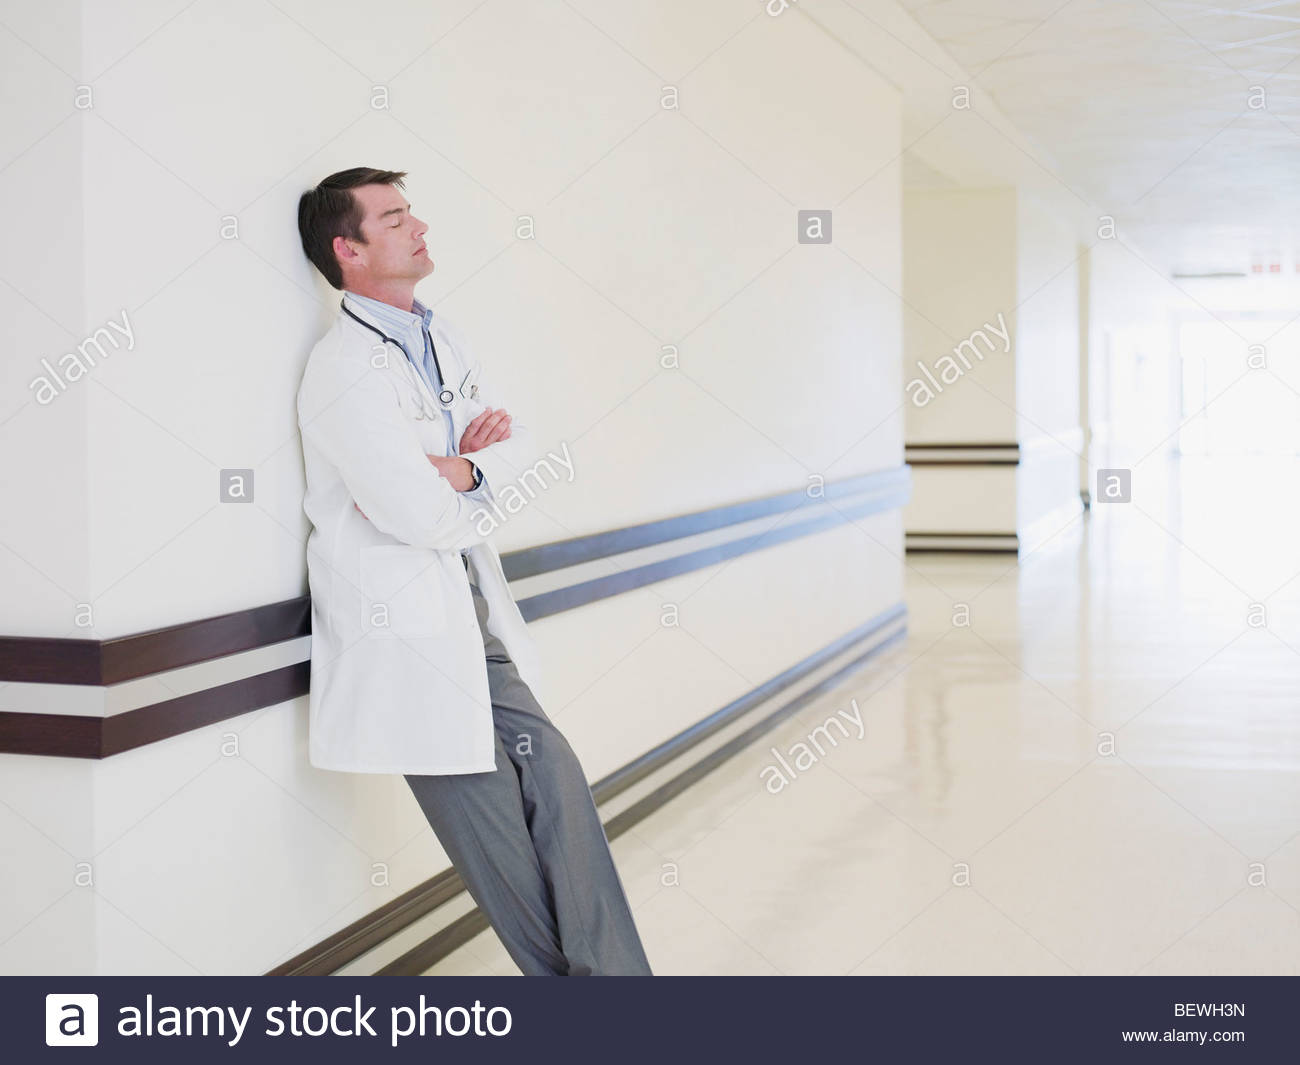 Tired doctor leaning in hospital corridor - Stock Image